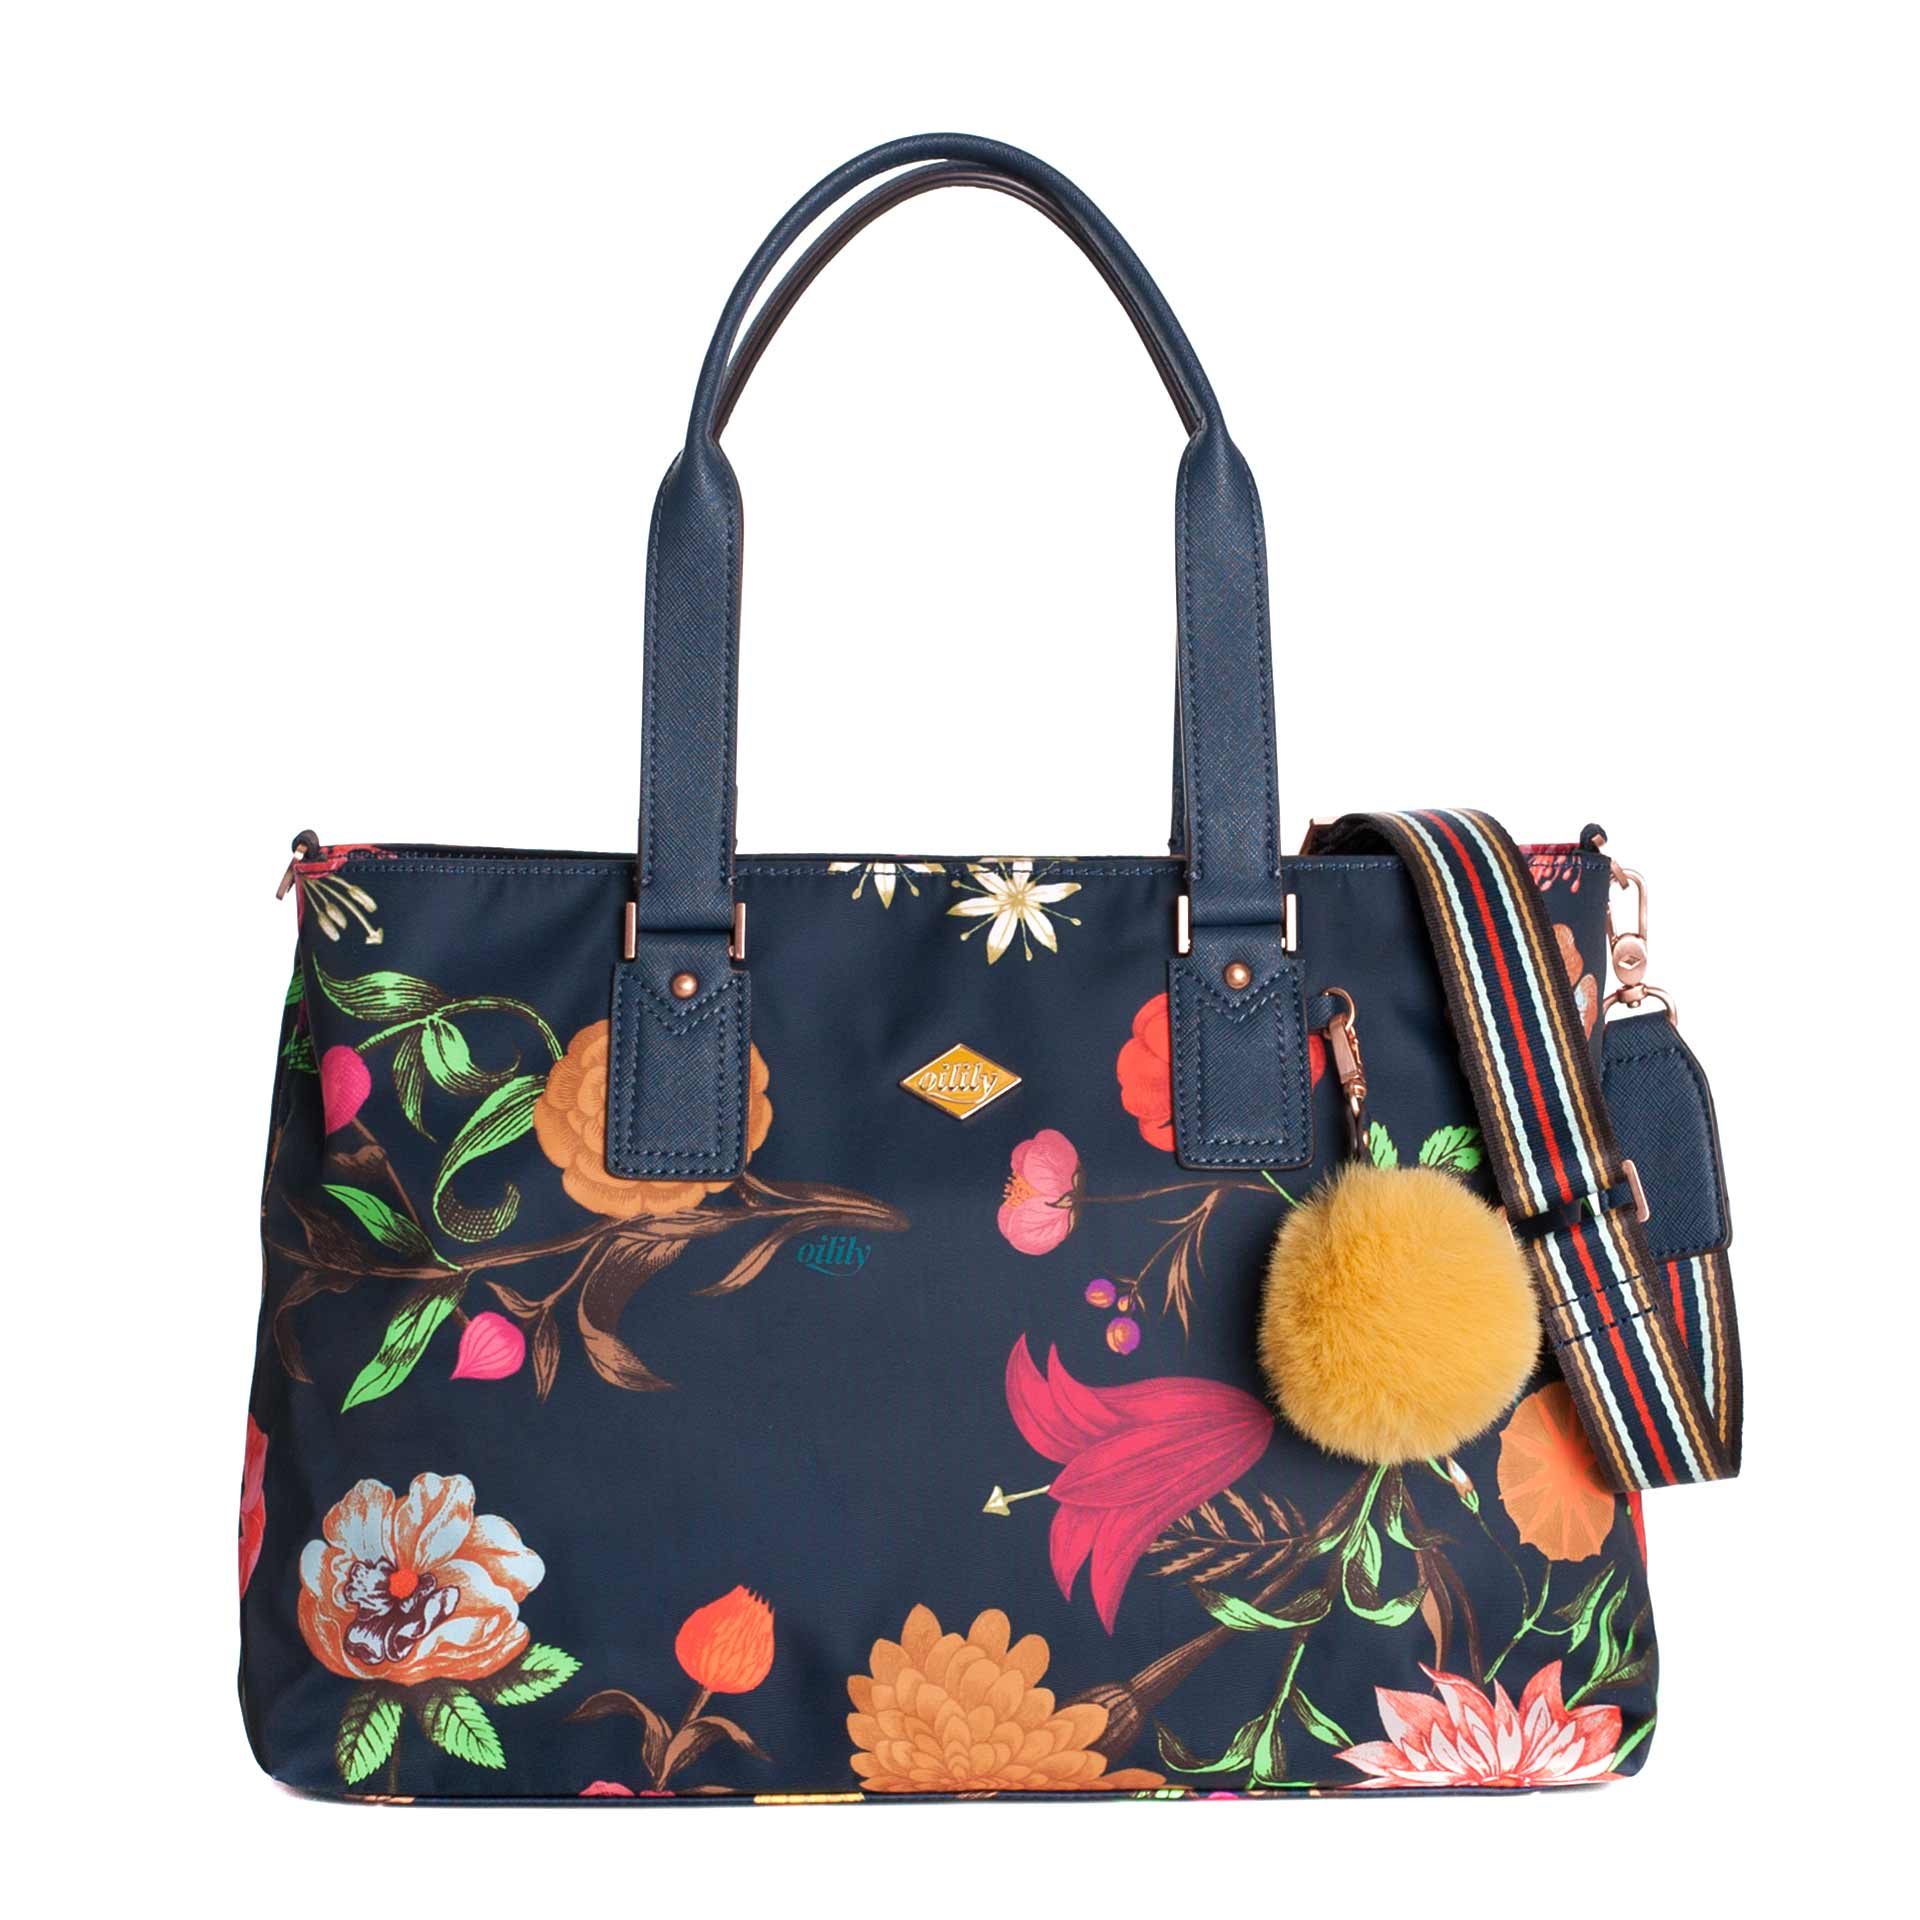 Winter Bouquet Carry All M navy night